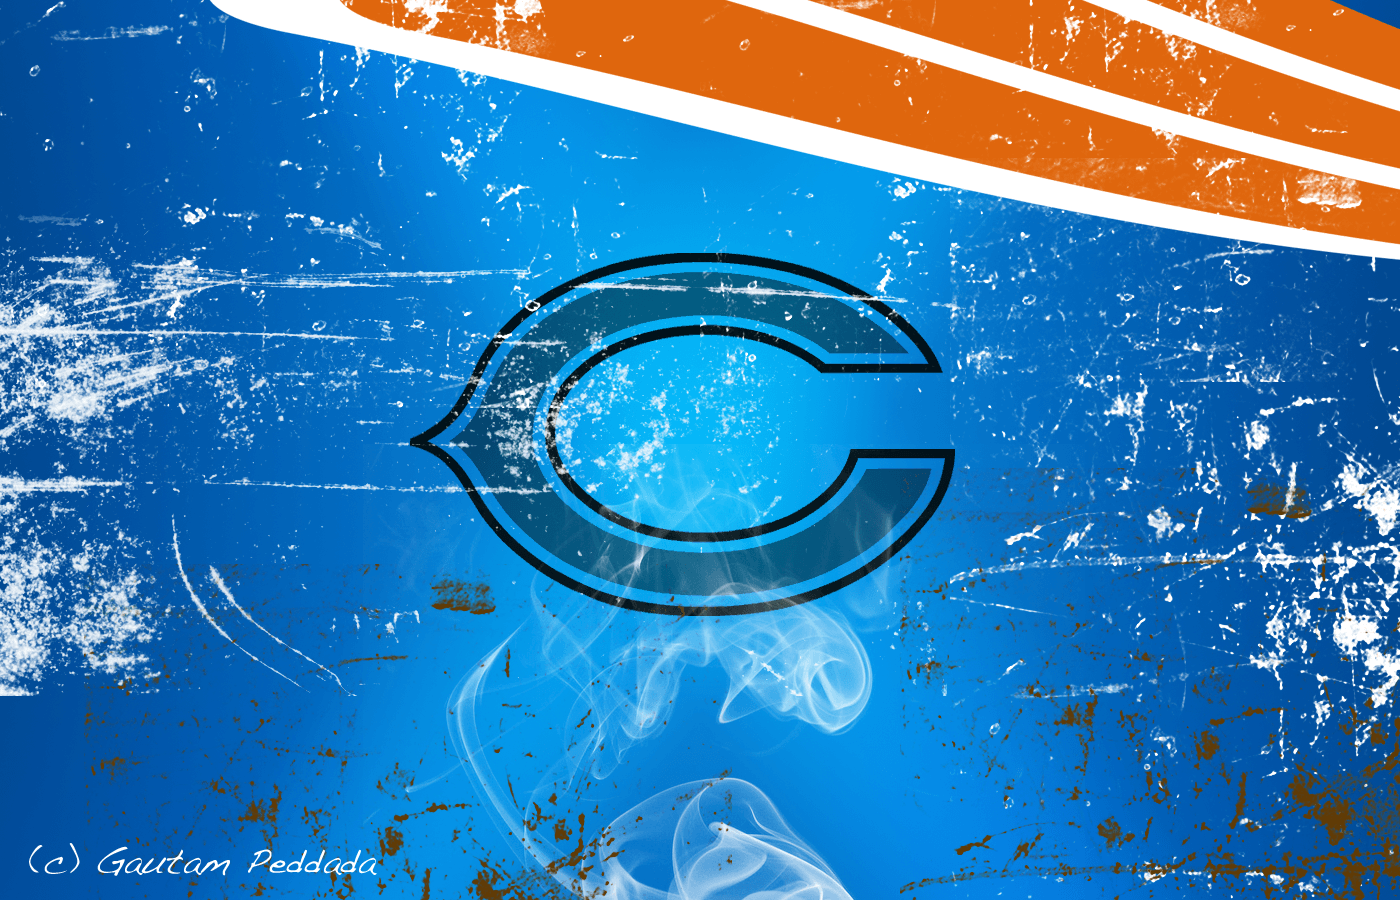 16 Chicago Bears HD Wallpapers   Backgrounds - Wallpaper Abyss